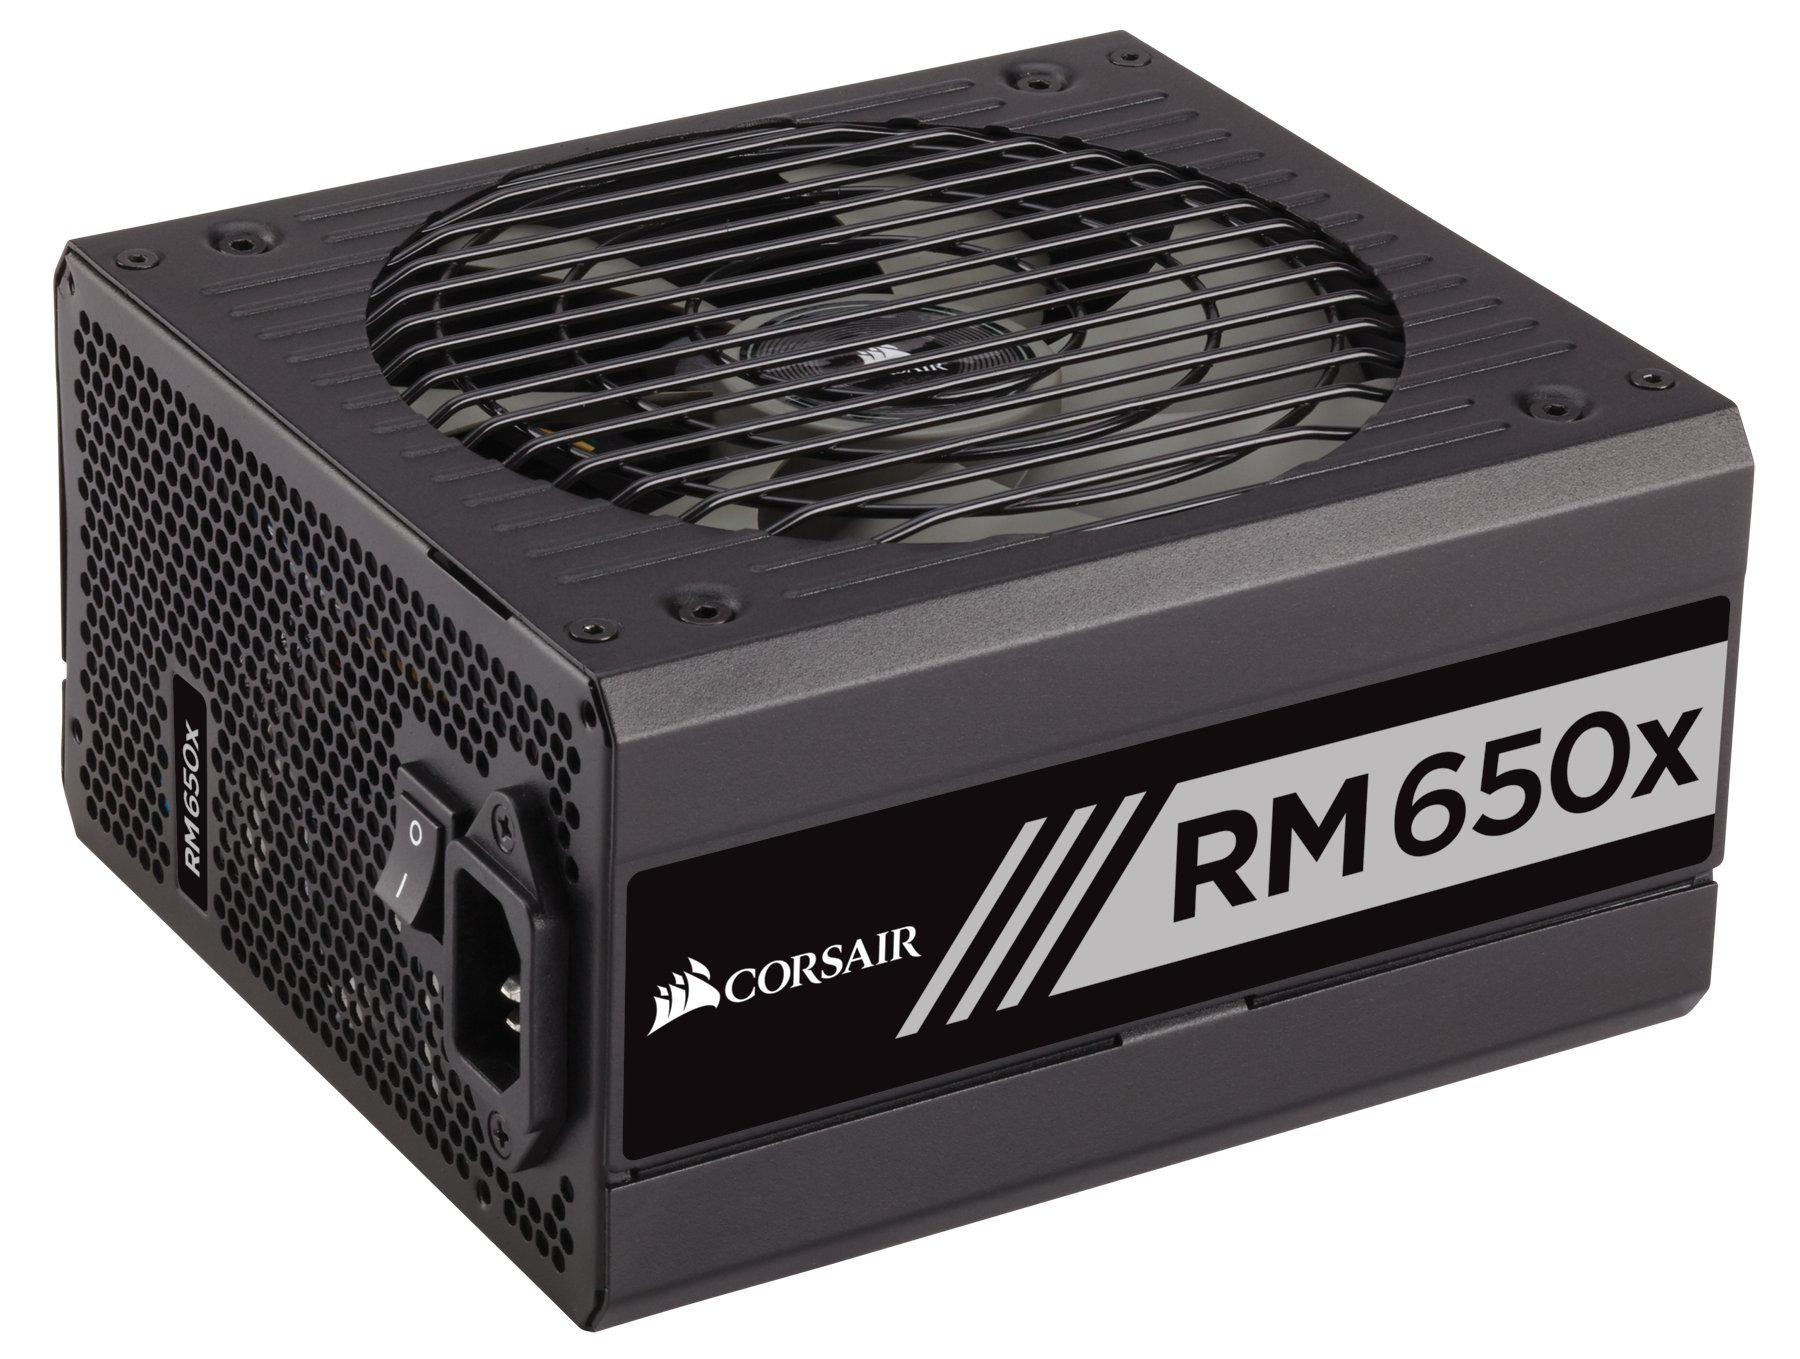 CORSAIR RMx Series, RM650x, 650 Watt, Fully Modular Power Supply, 80+ Gold Certified by Corsair